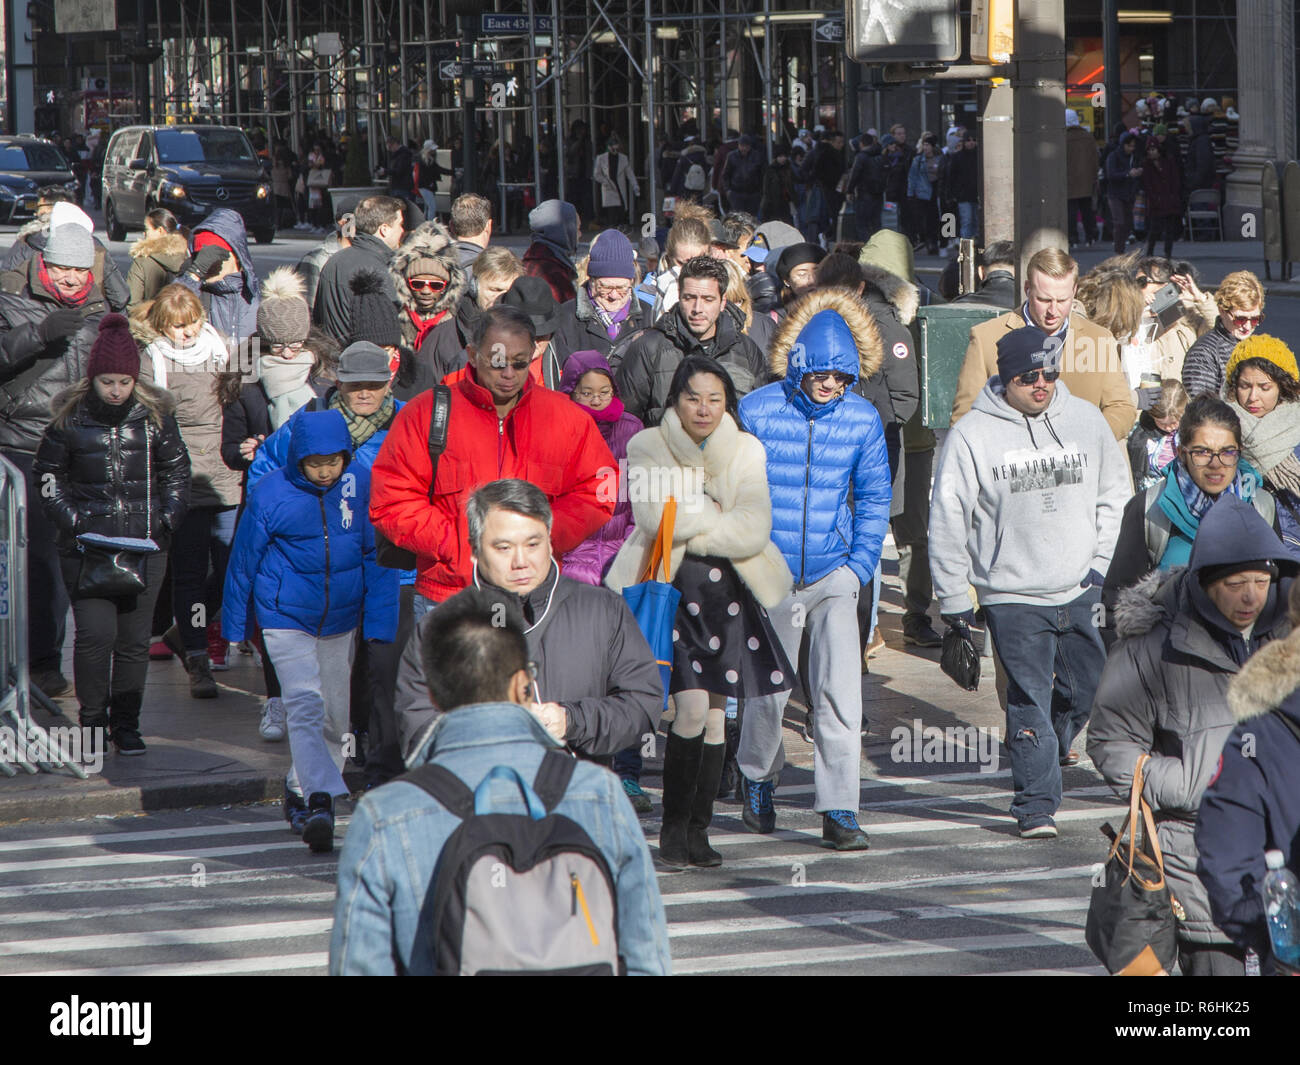 Crowds of people out shopping on a brisk 'Black Friday' at 42nd Street and 5th Avenue kicking off the holiday gift shopping season. - Stock Image